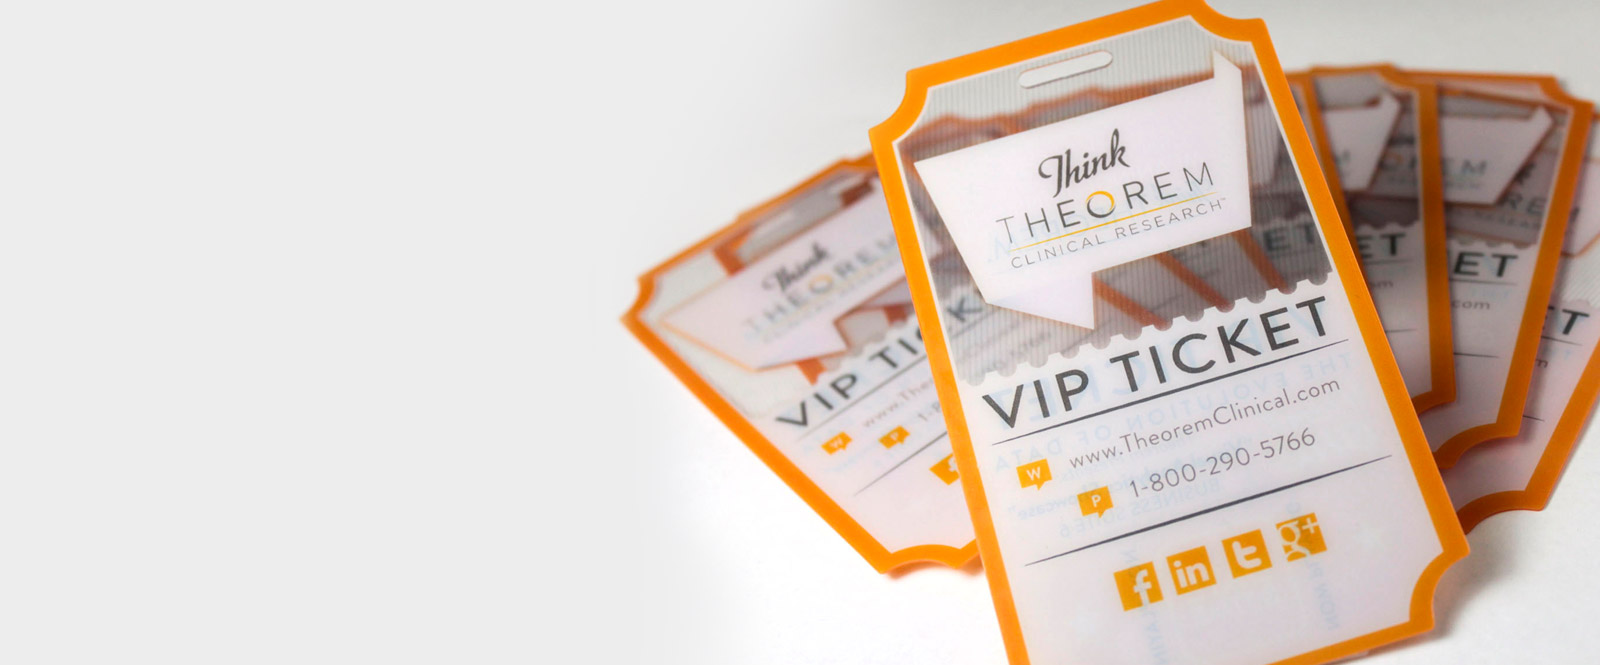 vip-passes-billboard.jpg